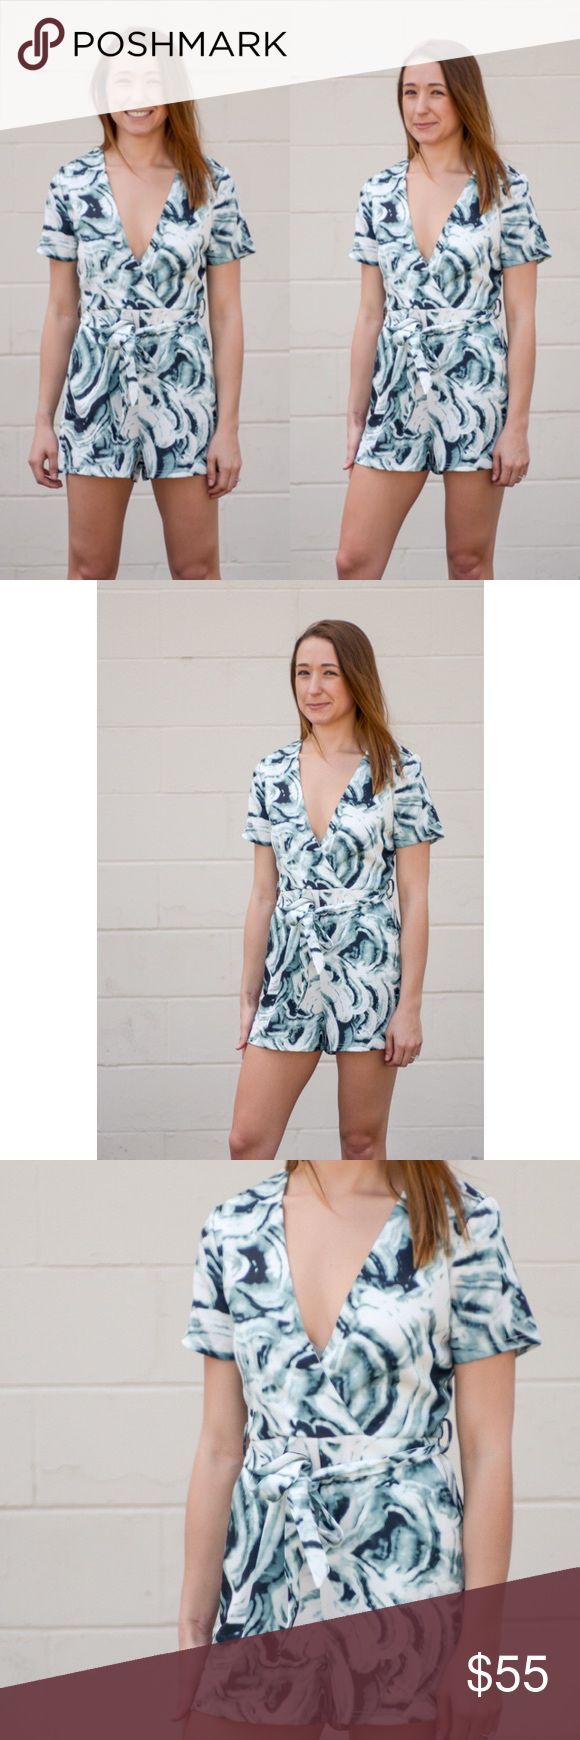 🎉1 HR SALE🎉 Sage Romper Short sleeve surplice front printed self belted romper. Absolutely stunning 😍😍😍 An absolute MUST-HAVE for any fashionista 💁🏻 Soft and comfy!! 100% polyester. No trades. Price firm unless bundled. Kyoot Klothing Pants Jumpsuits & Rompers